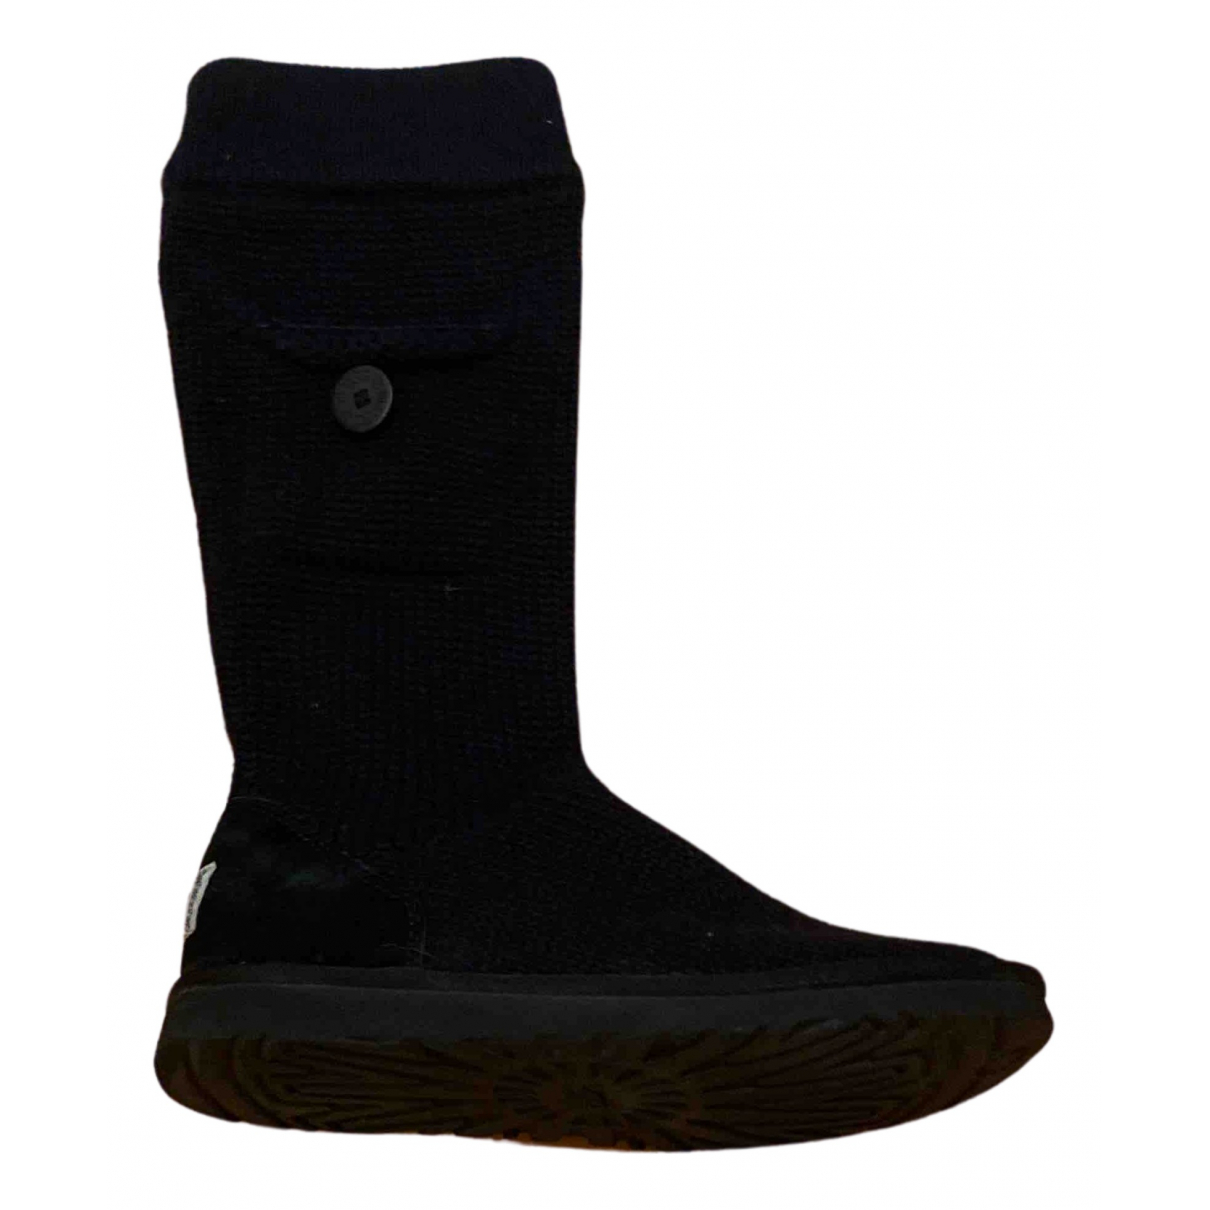 Ugg N Black Cloth Boots for Women 40 EU